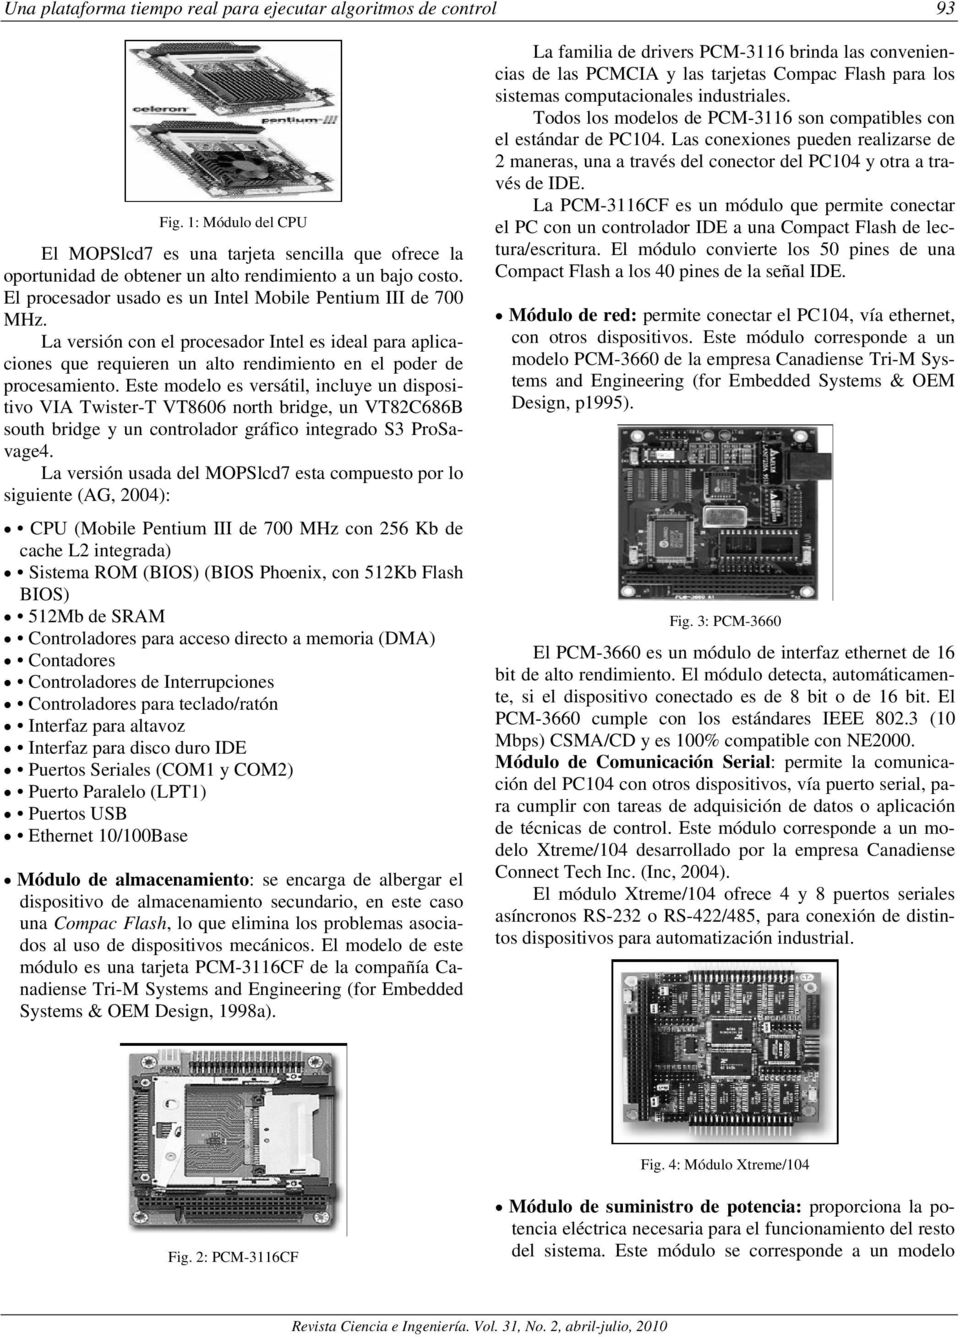 Este modelo es versátil, incluye un dispositivo VIA Twister-T VT8606 north bridge, un VT82C686B south bridge y un controlador gráfico integrado S3 ProSavage4.